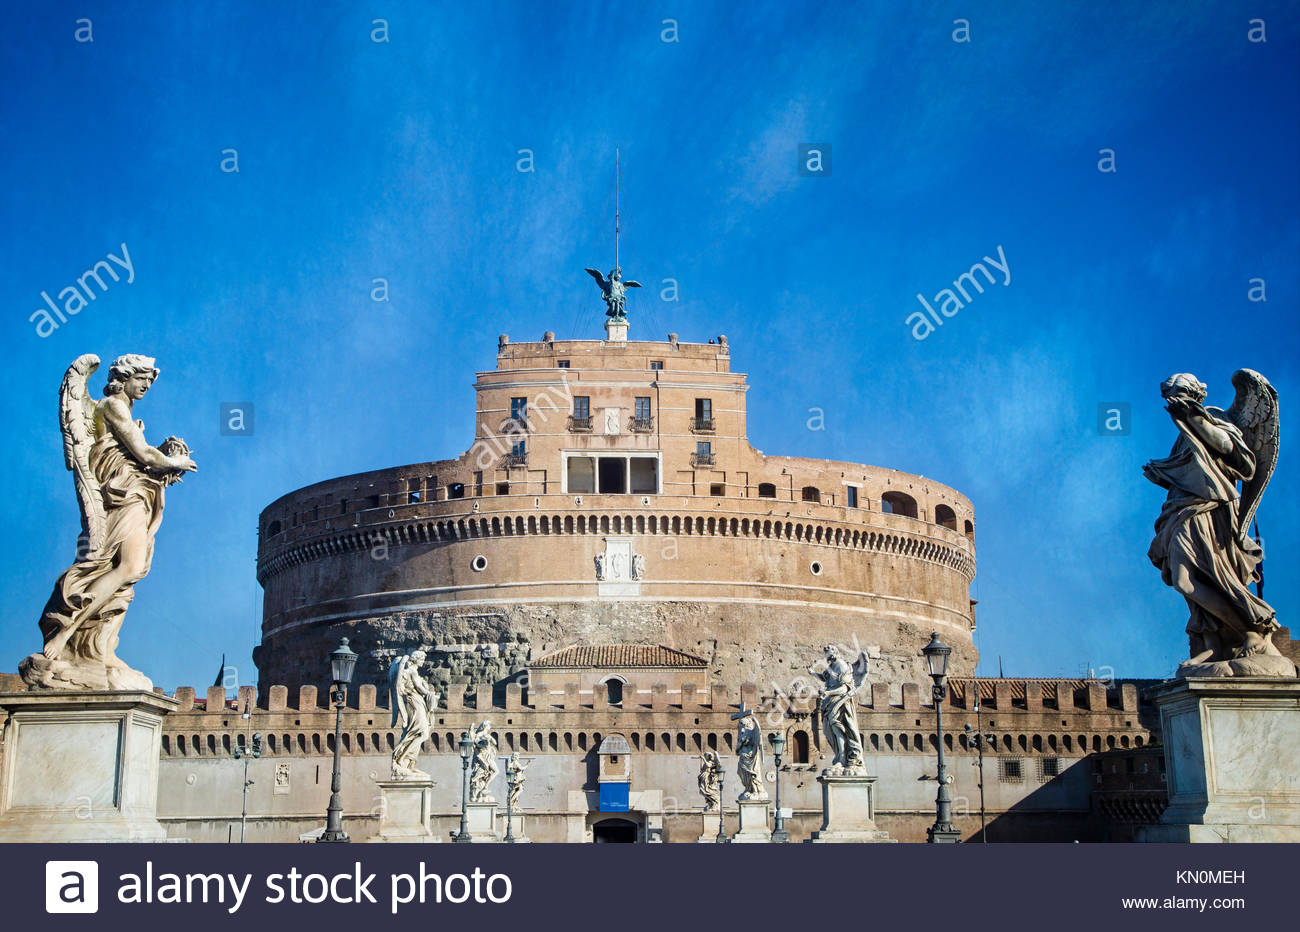 The Castle Sant' Angelo in Rome, Italy is the Mausoleum of Hadrian which was finished in 139 AD. - Stock Image